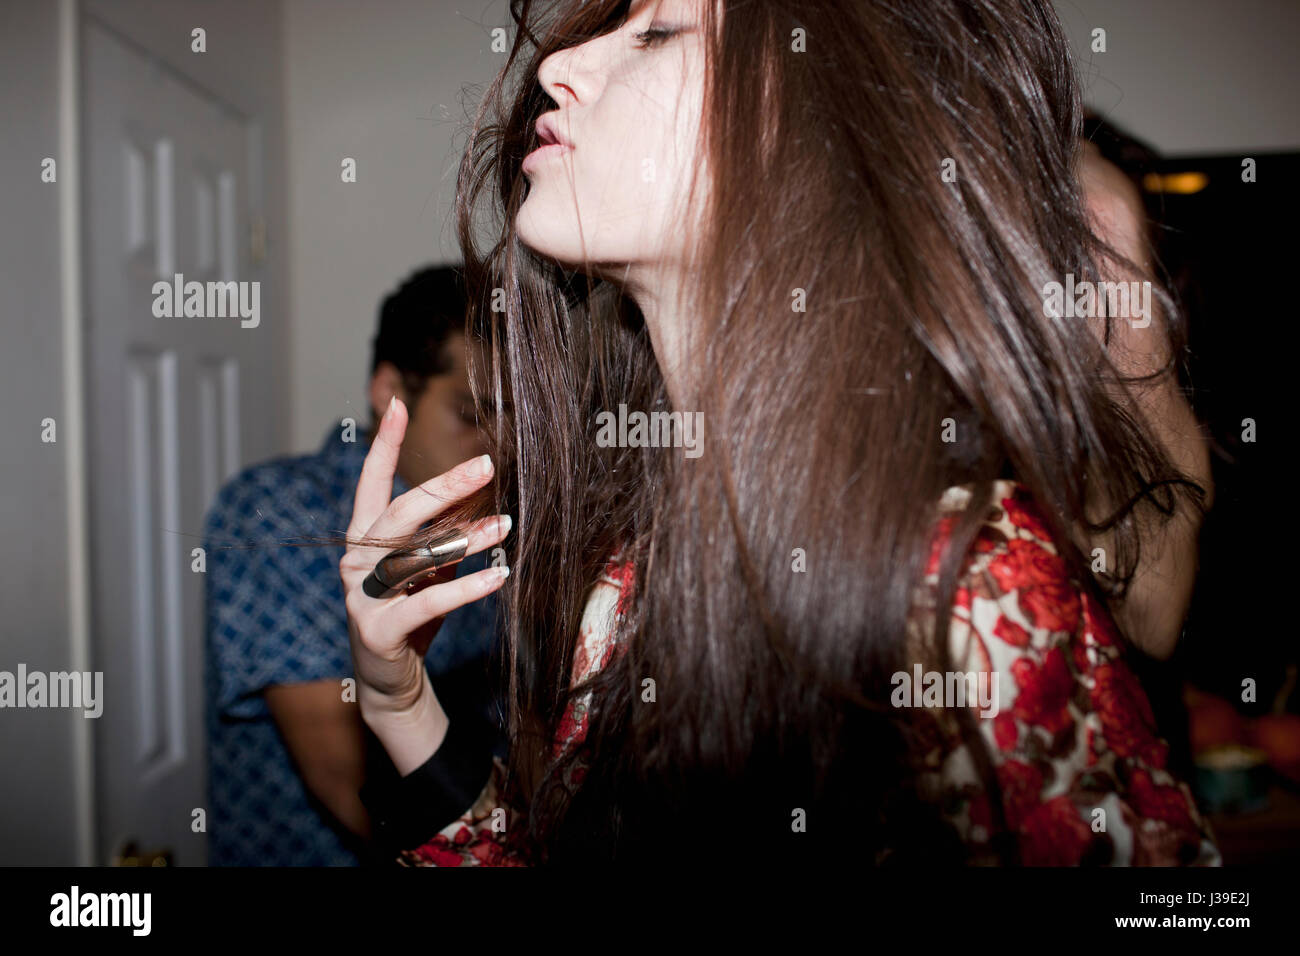 Young woman dancing at a party Photo Stock